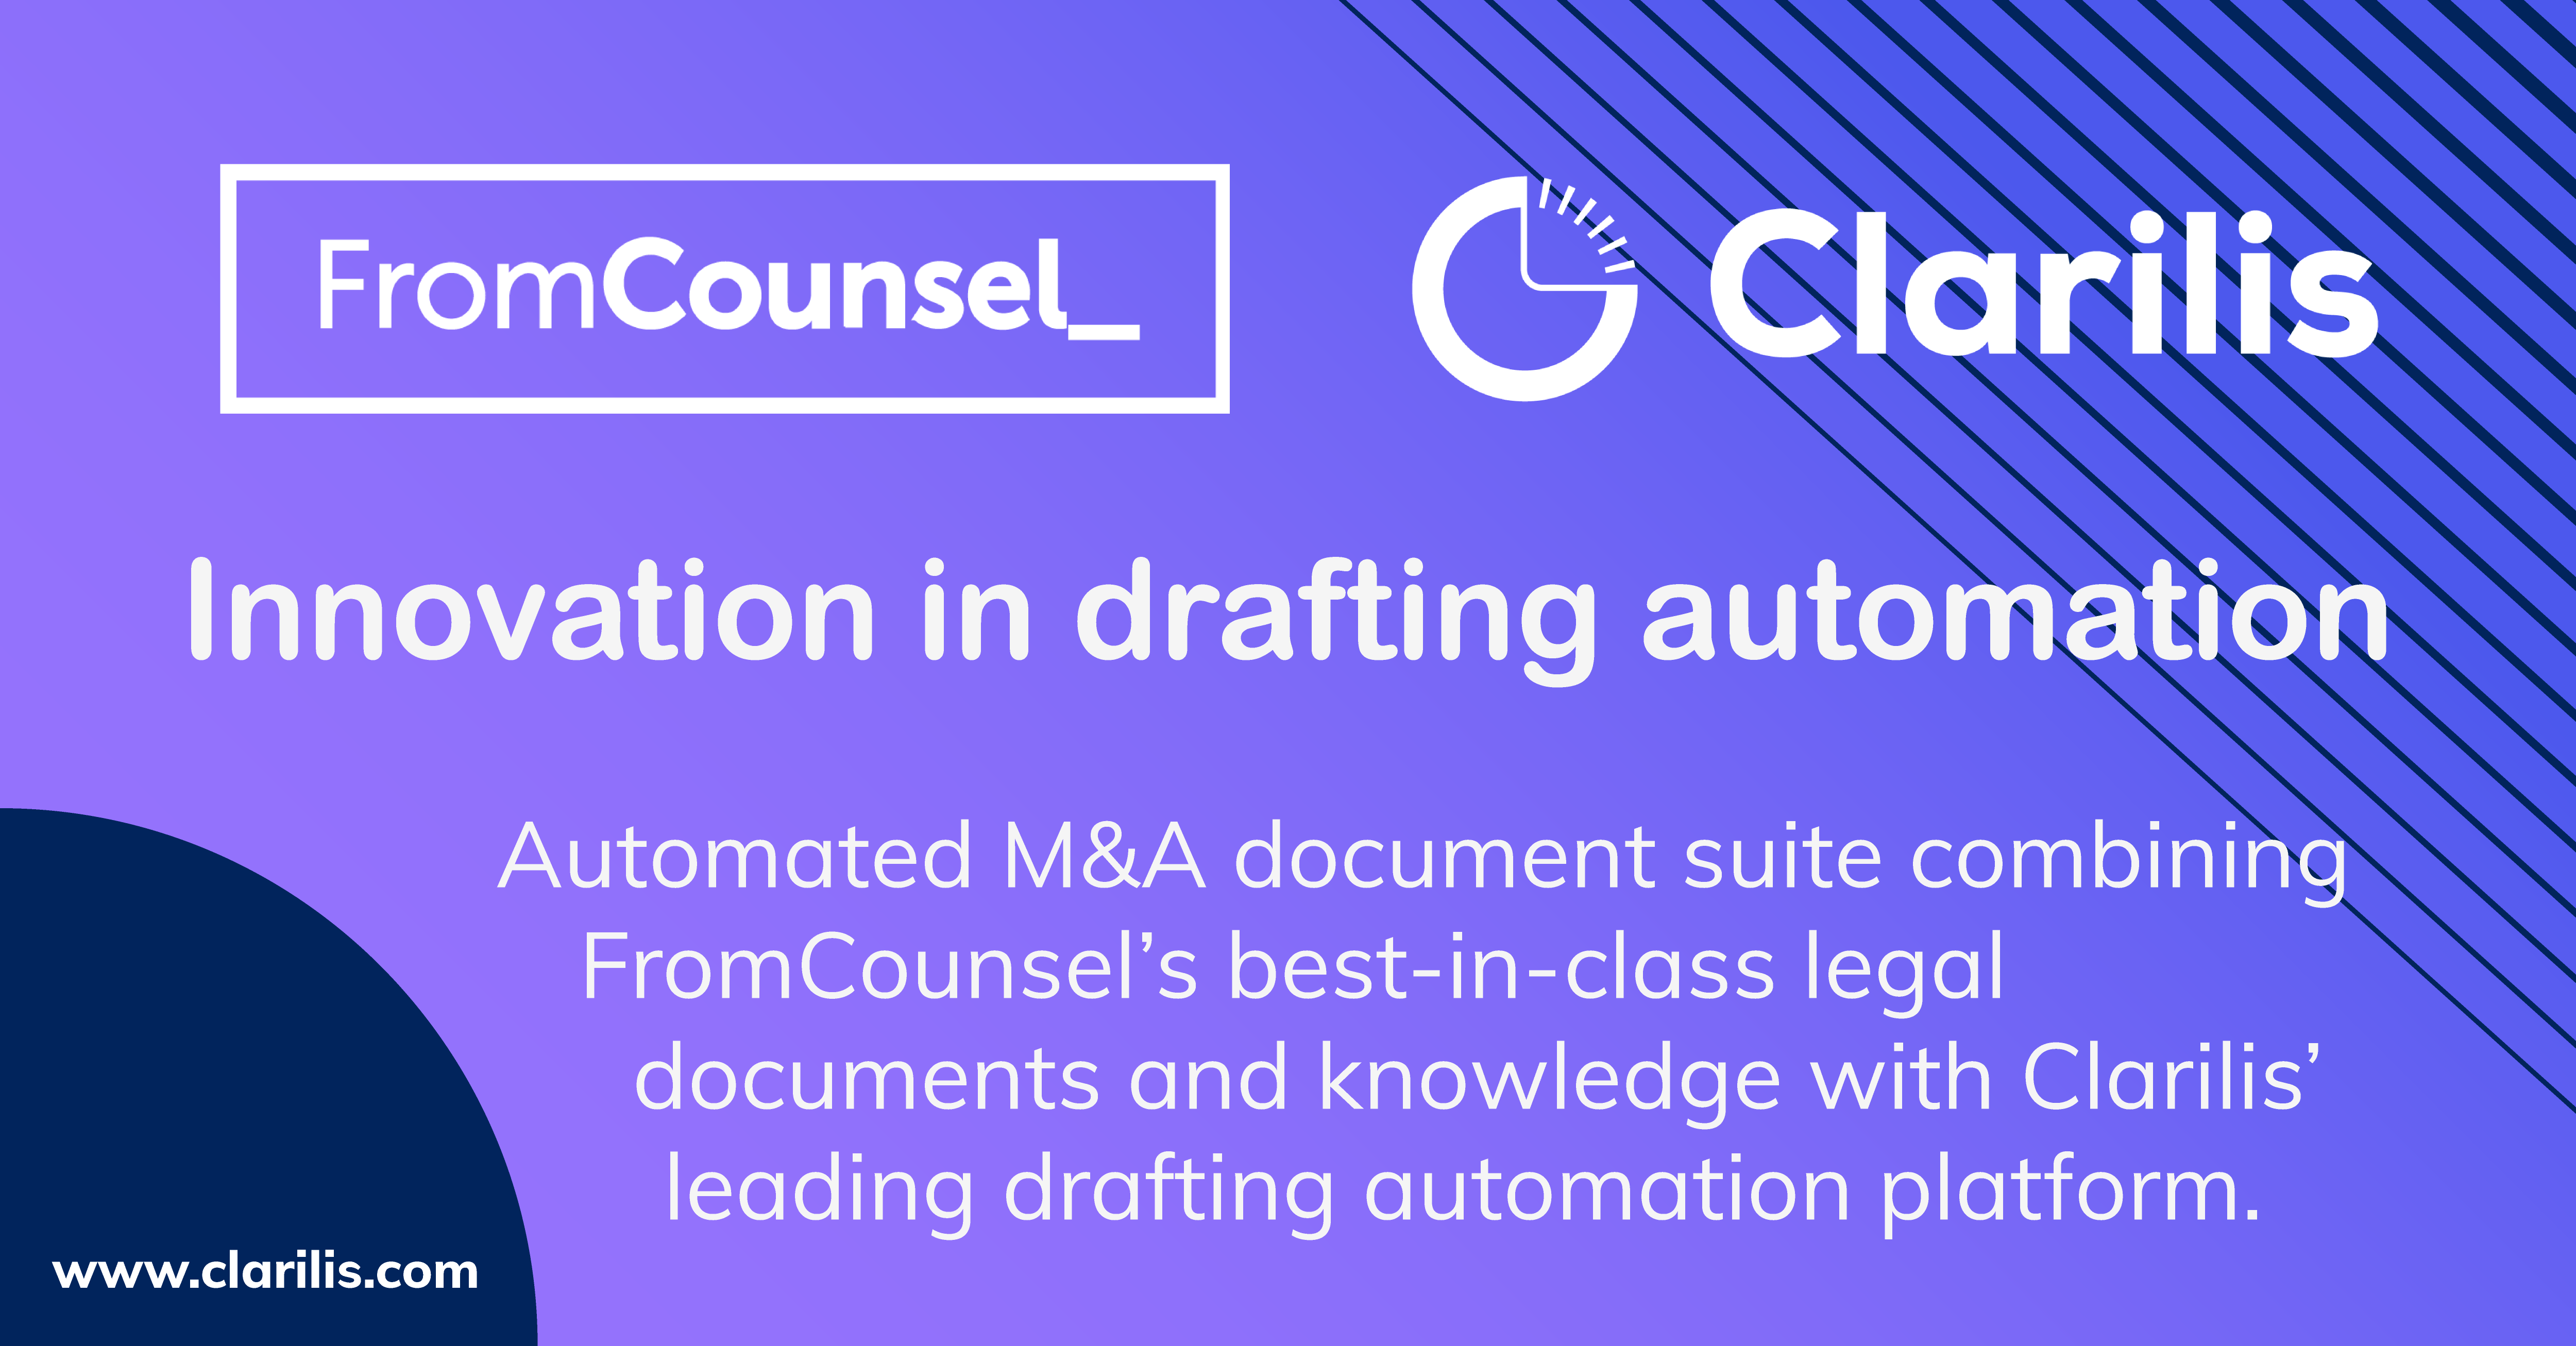 Innovation in drafting automation: Clarilis and FromCounsel partnership